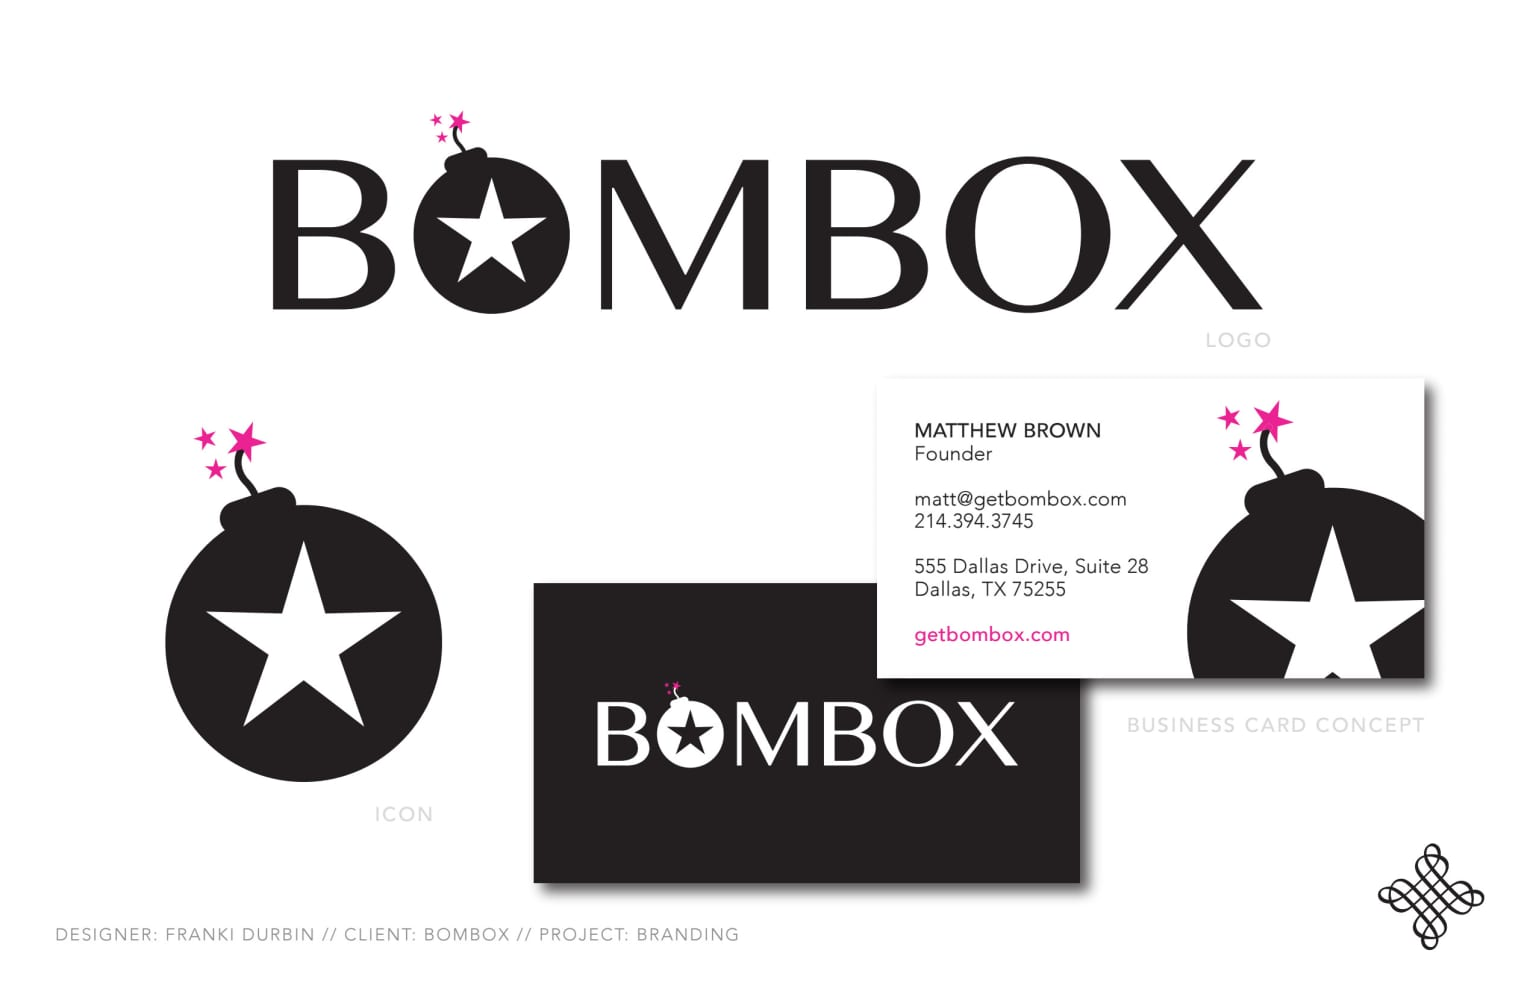 Shopify Ecommerce Subscription Site for Bombox